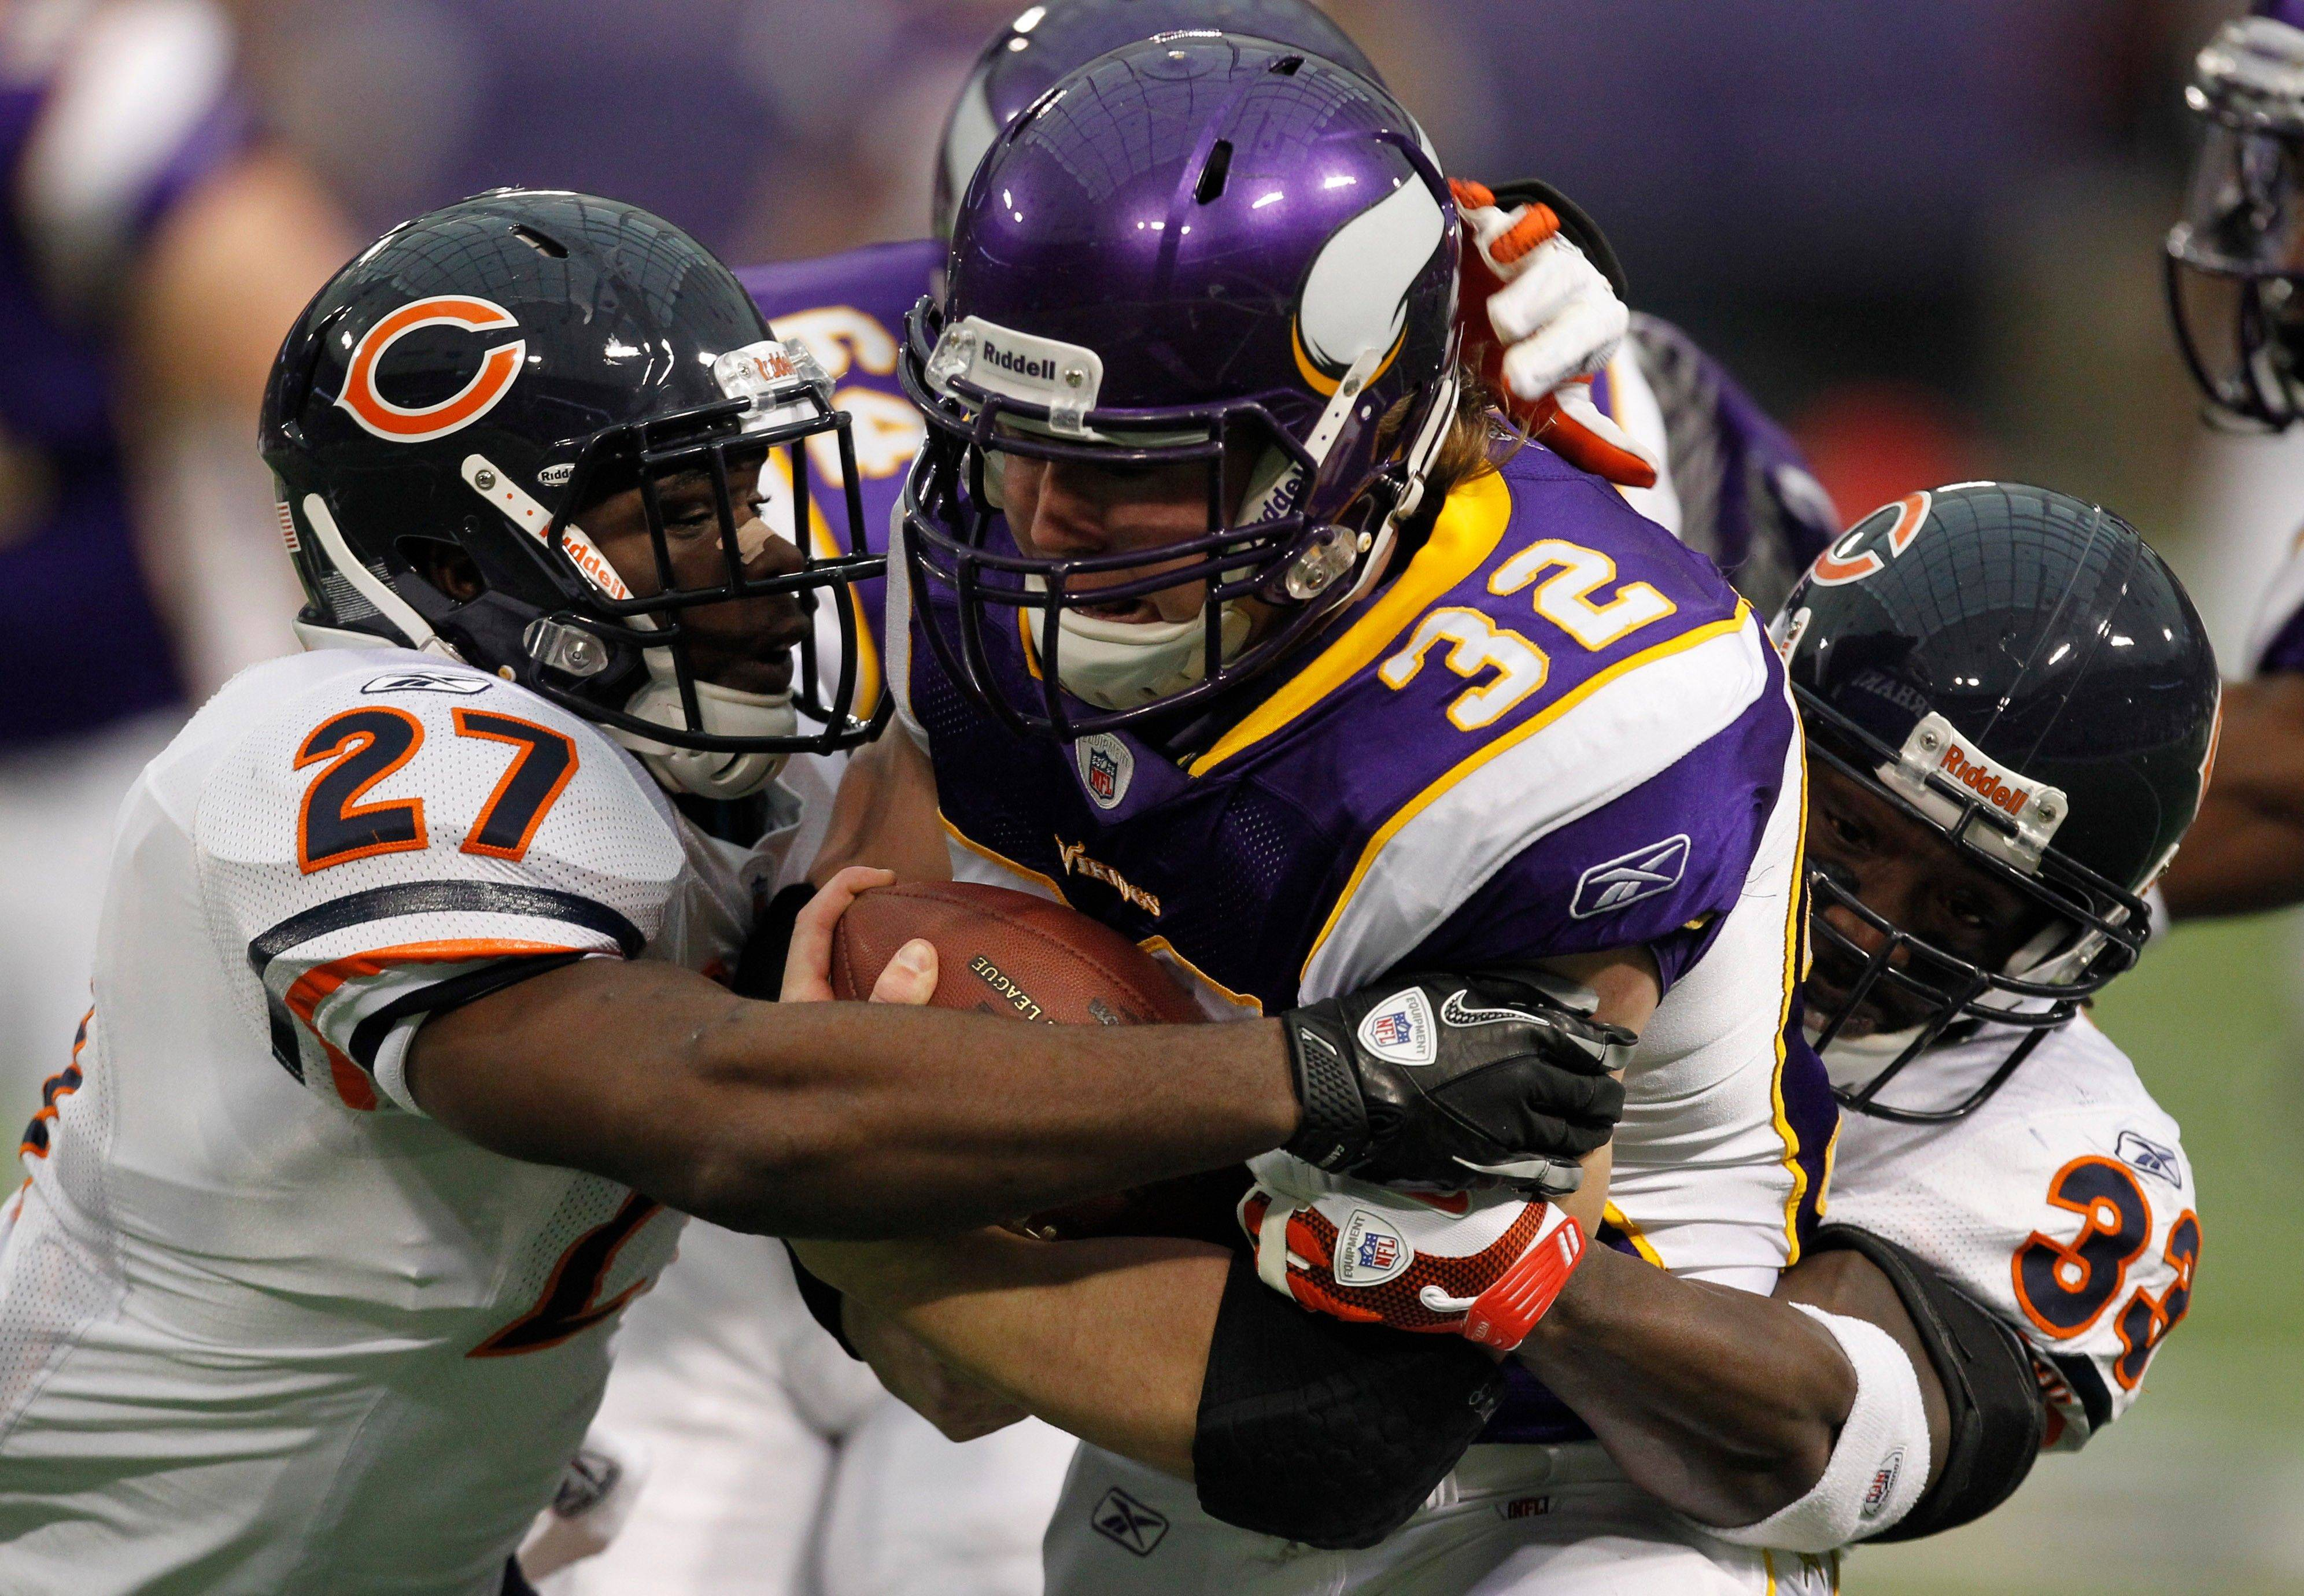 Minnesota Vikings running back Toby Gerhart is tackled by Chicago Bears strong safety Major Wright and cornerback Charles Tillman in the first half.